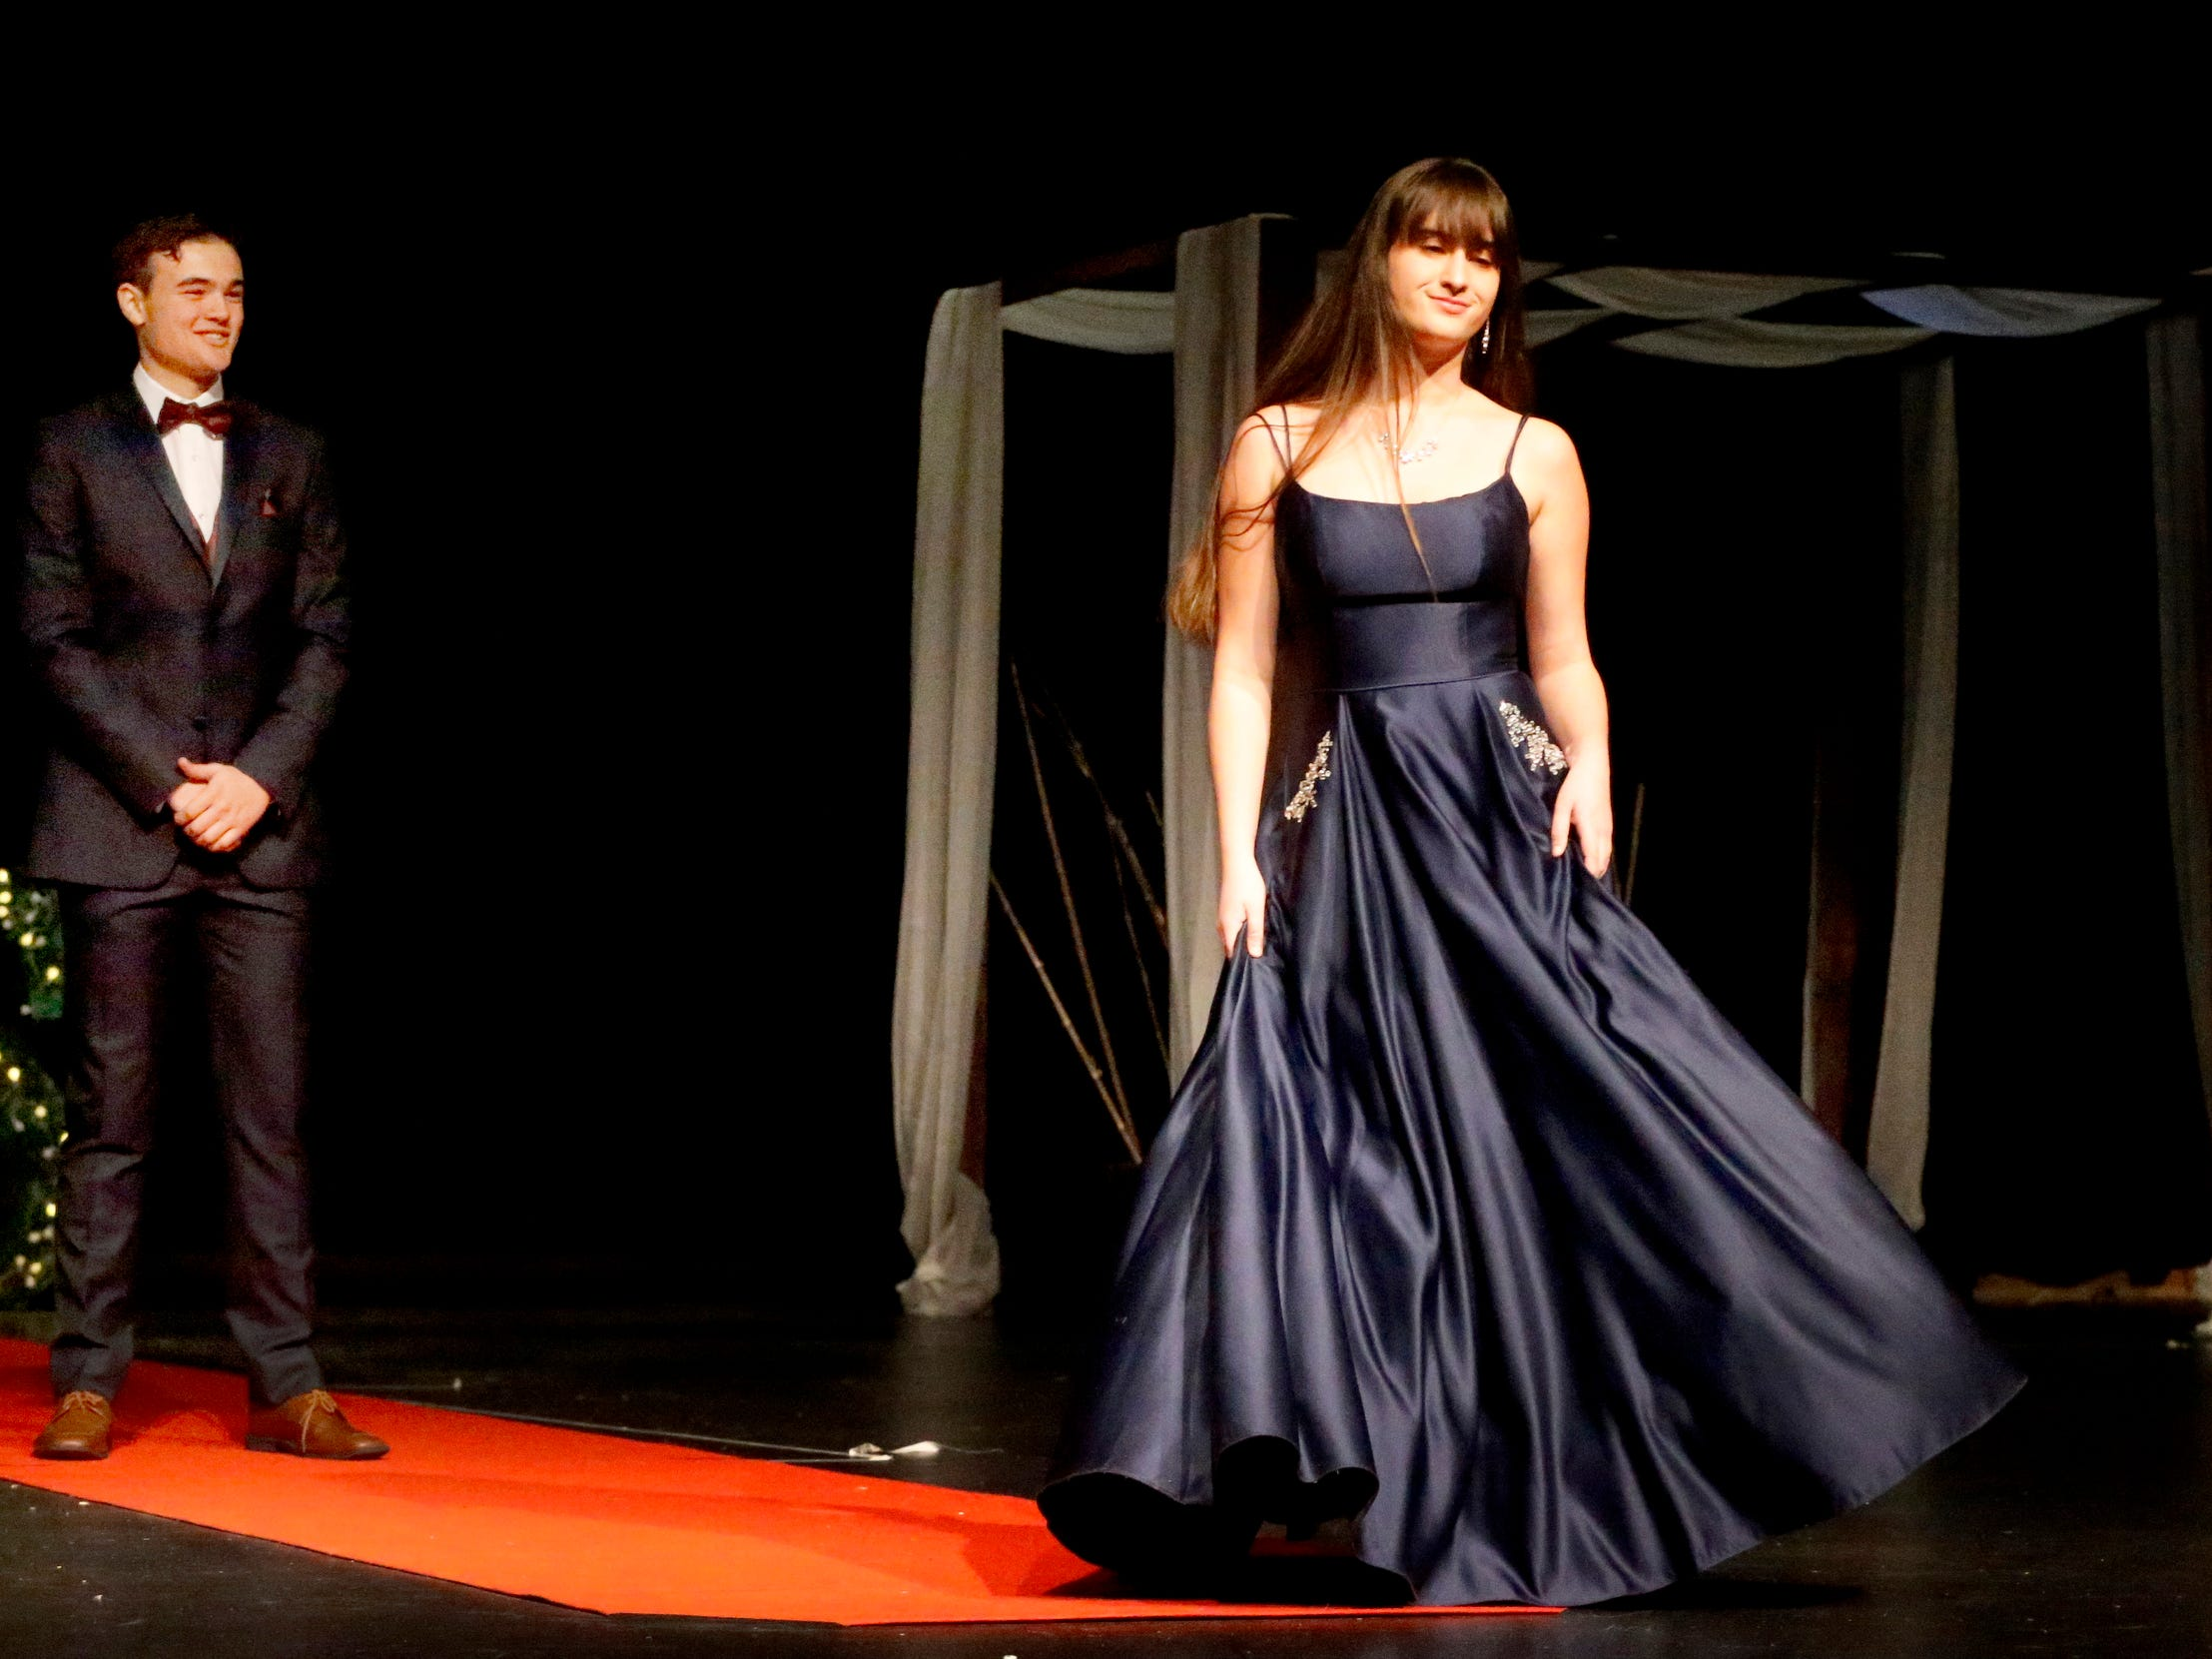 Taya Johnson steps forward to show off her dress as Zane Furqa waits to show off his tux during the Siegel Prom Fashion show on Thursday, Feb. 14, 2019.